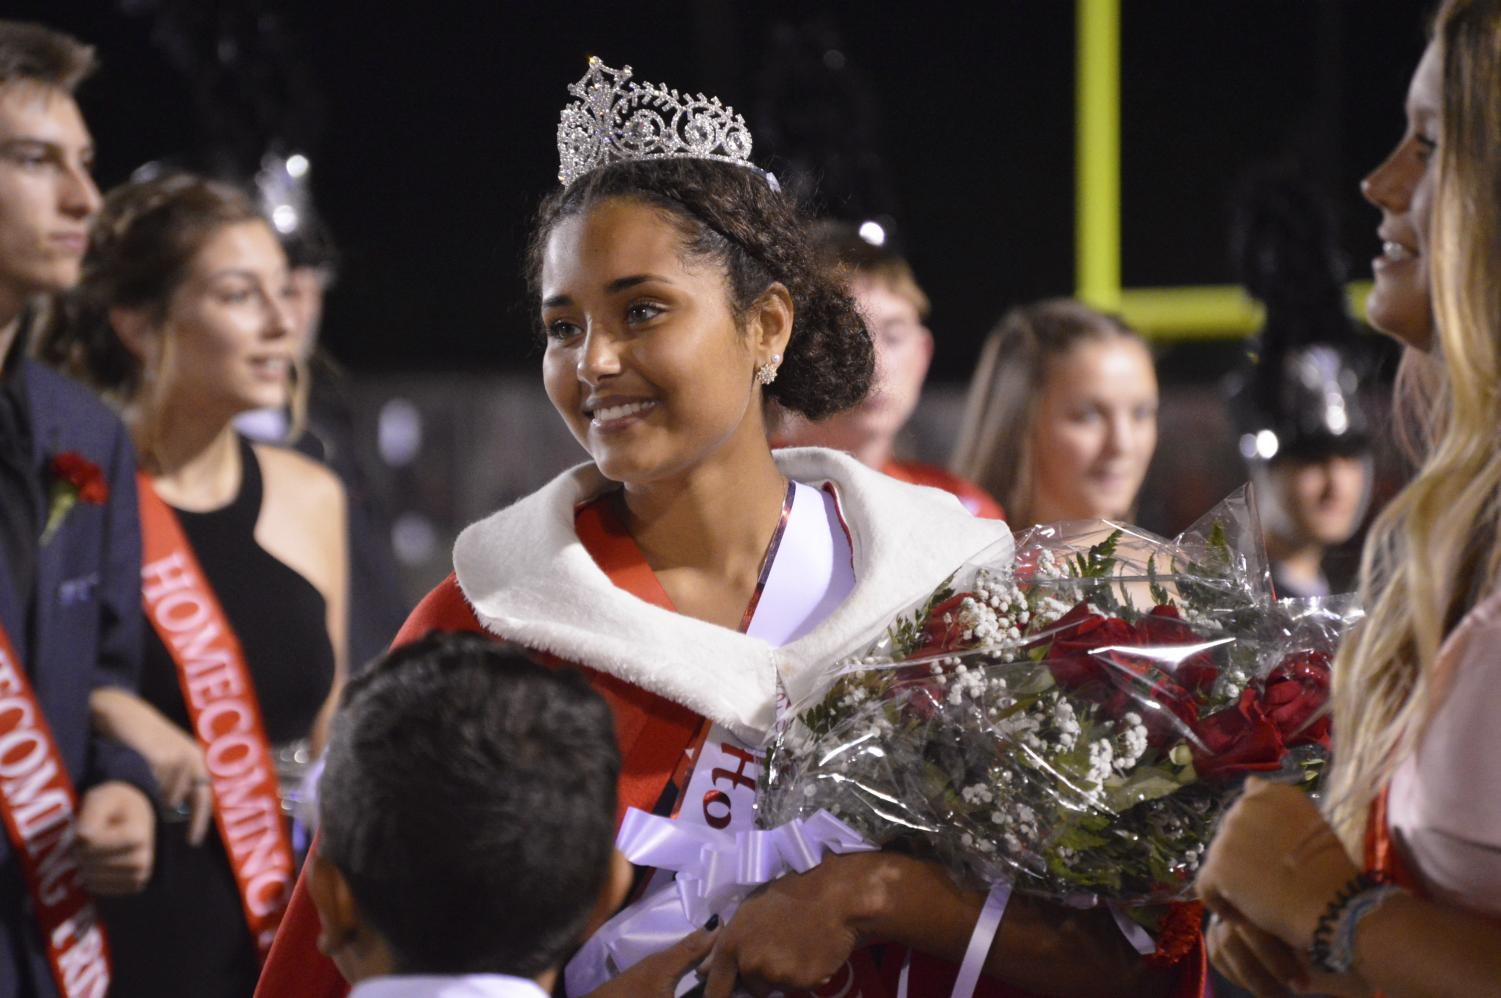 Senior Yasmin McClellan is crowned homecoming queen at the football game against Bloomington South on Fri. Sept. 21.